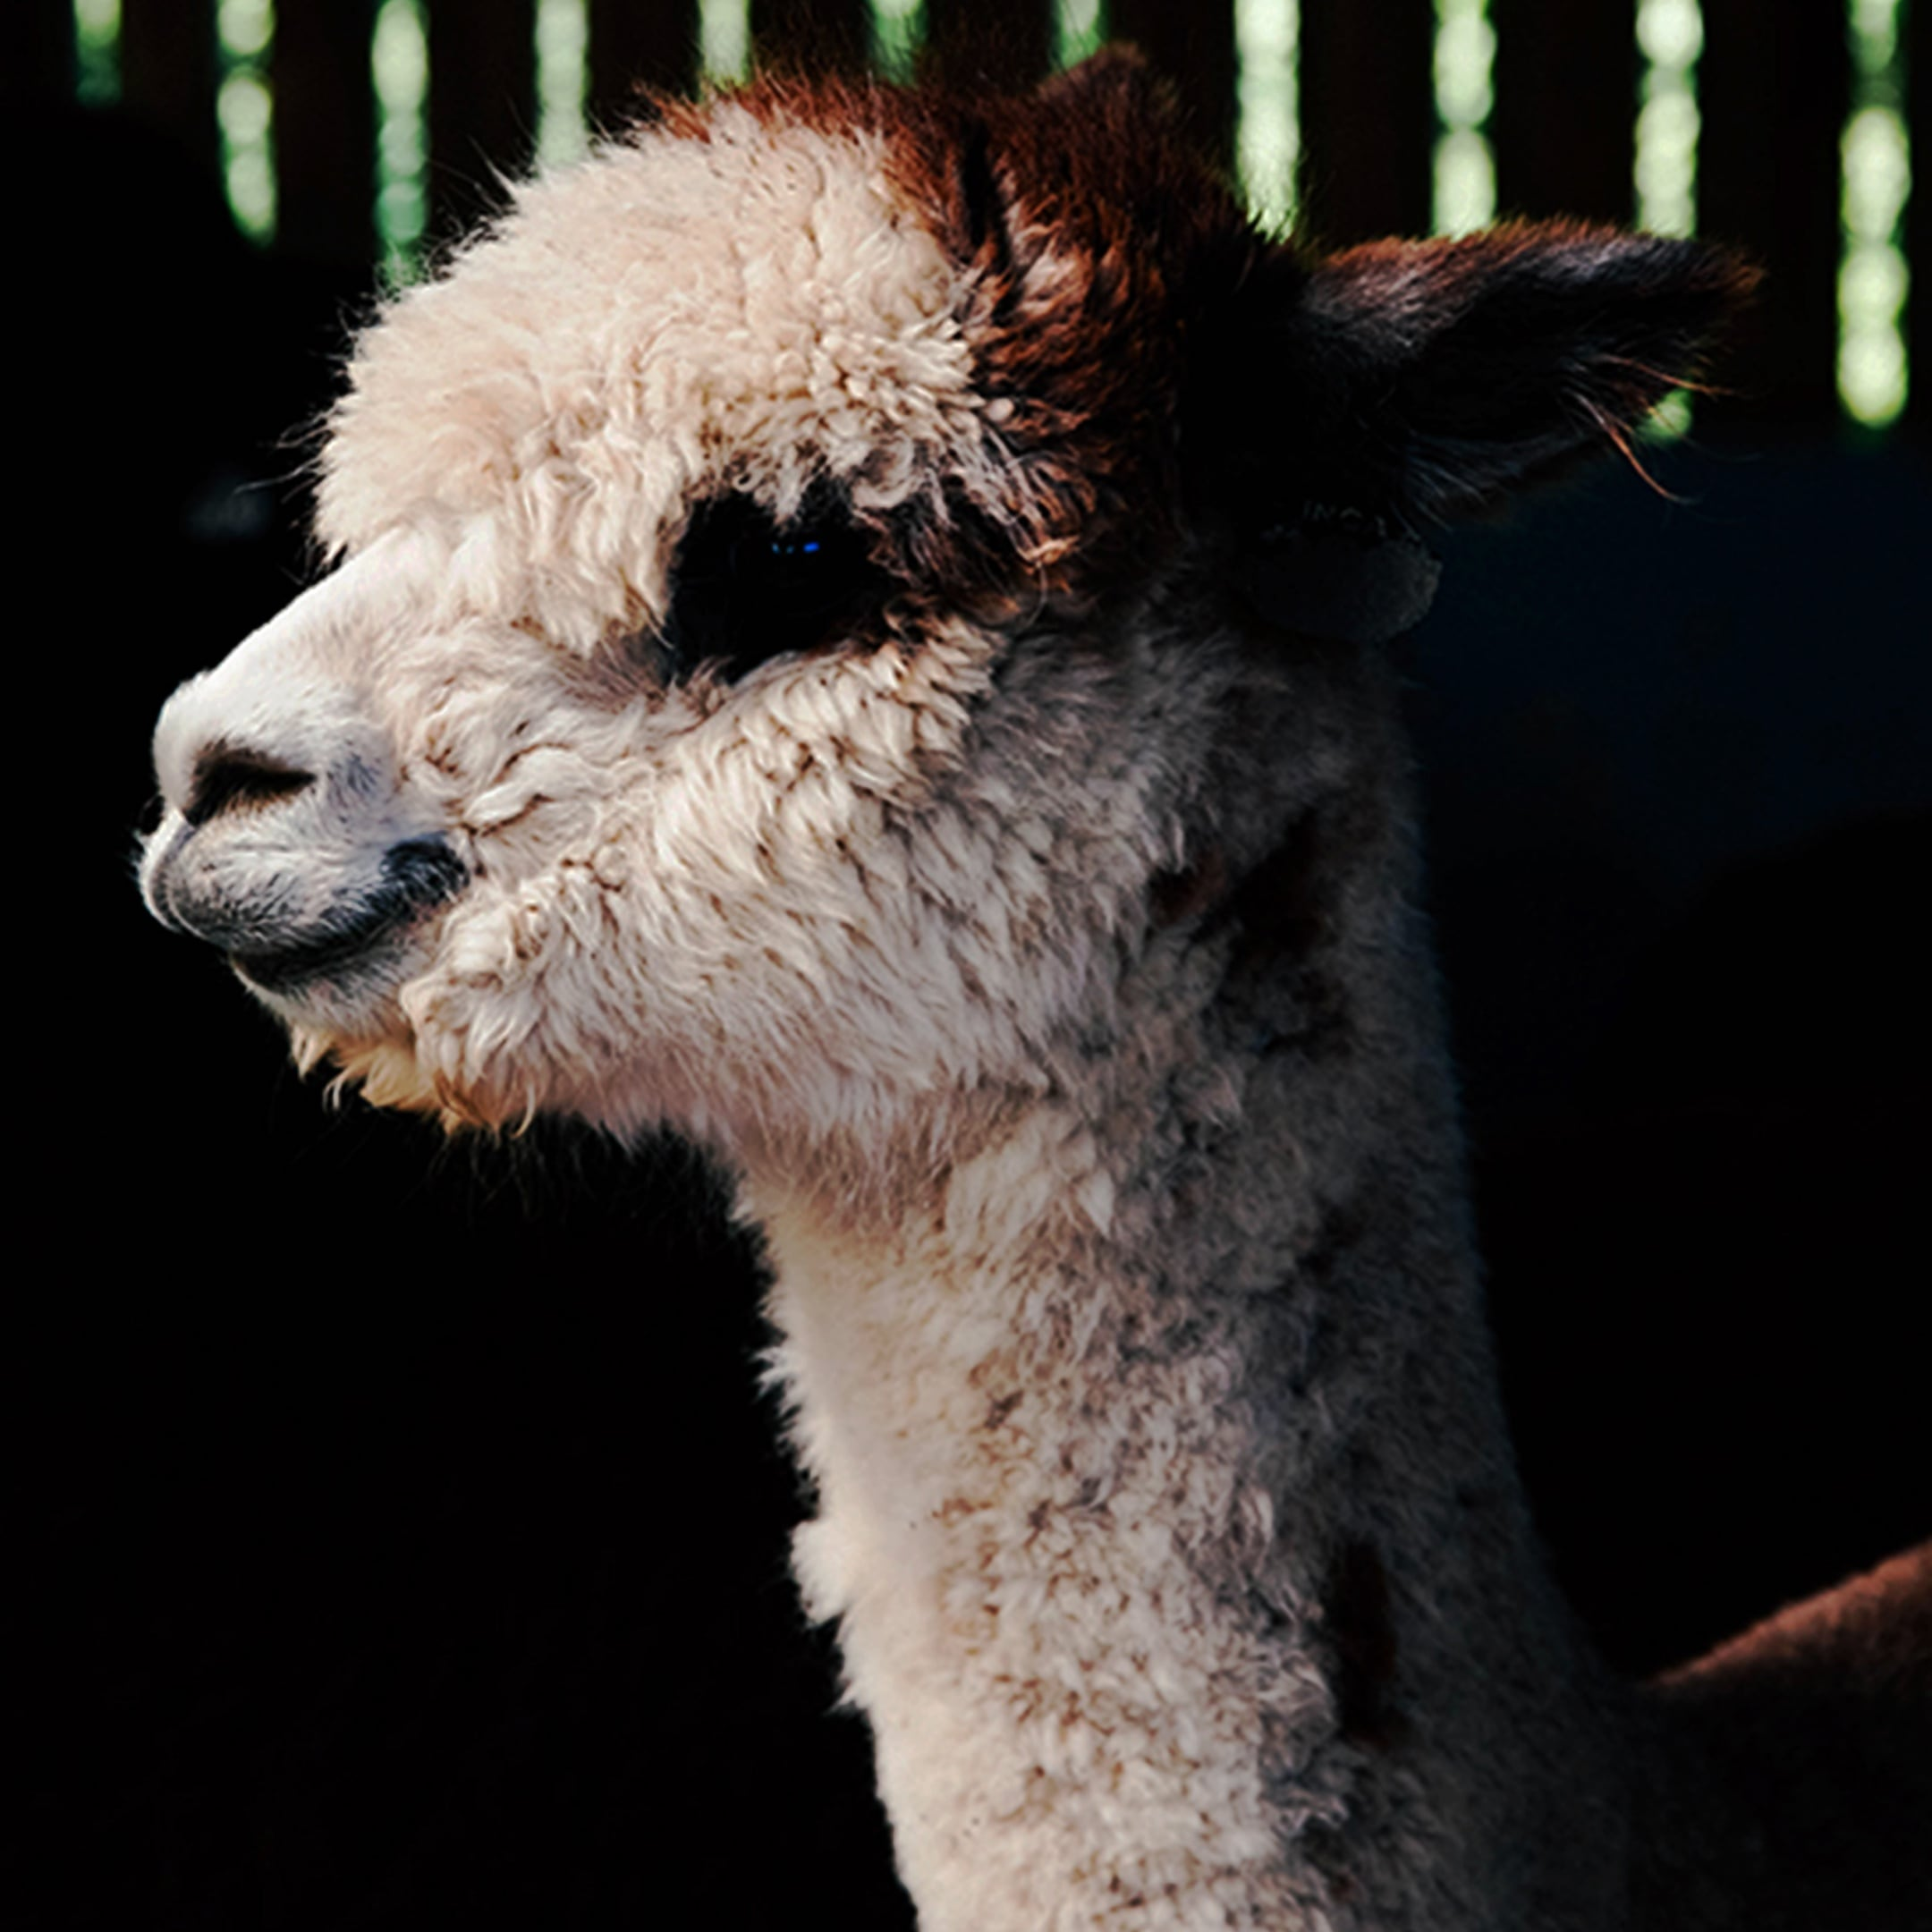 A white-brown speckled alpaca is standing in the stable